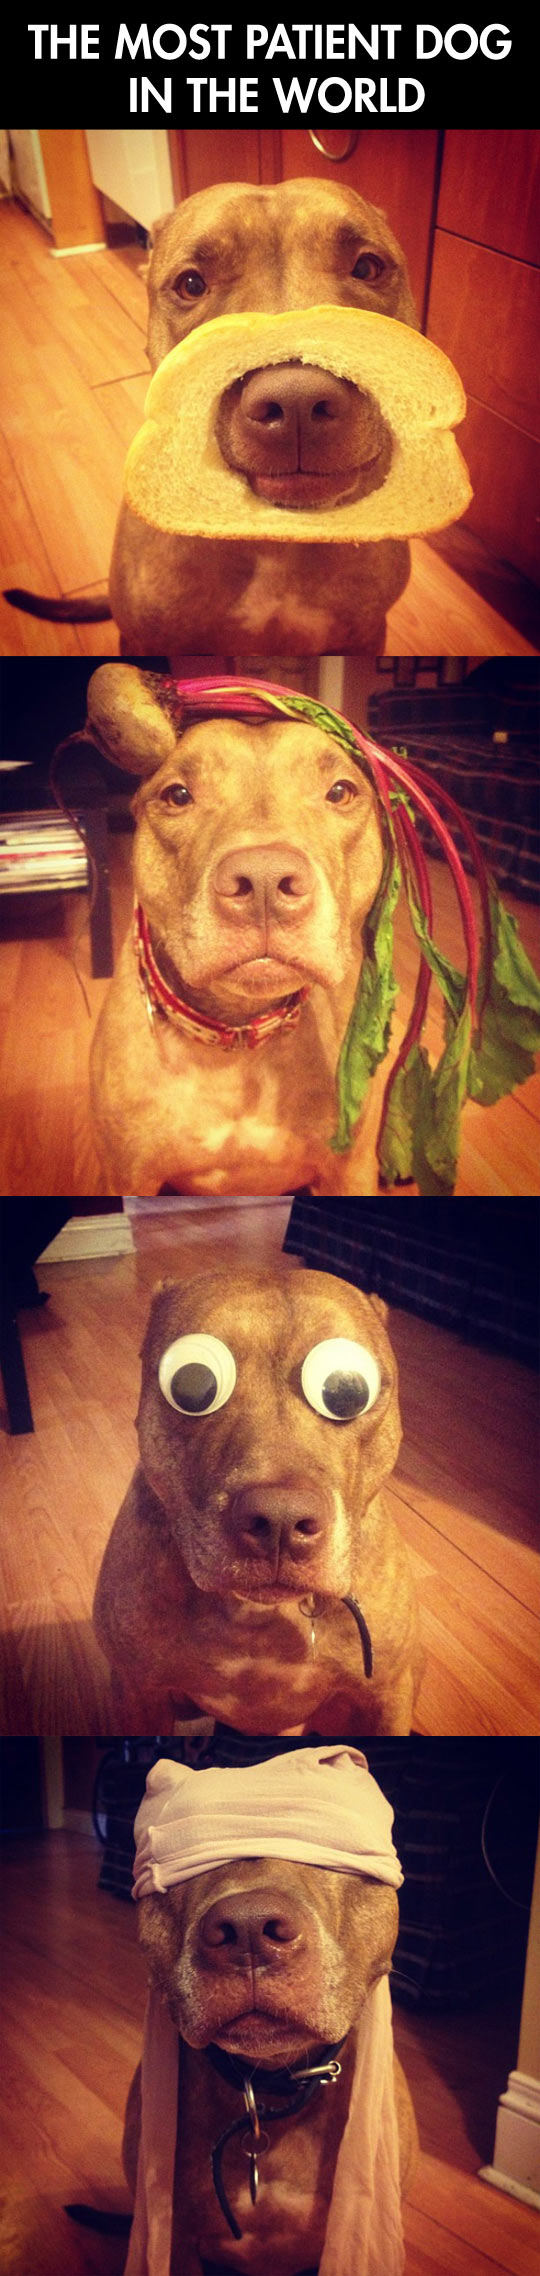 funny-dog-disguise-hat-bread-mask